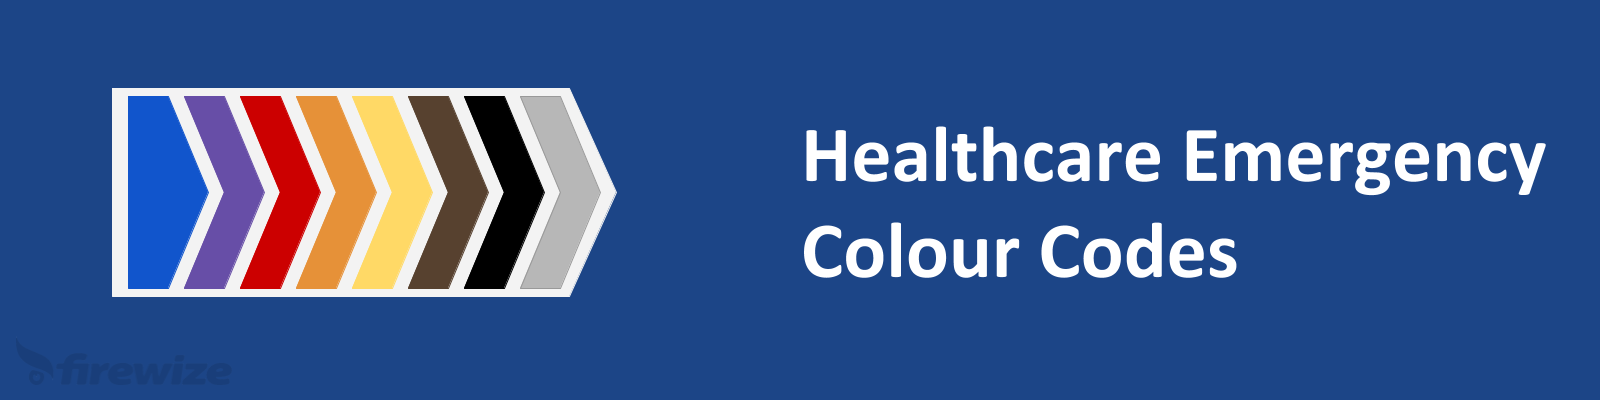 Healthcare Emergency Colour Codes